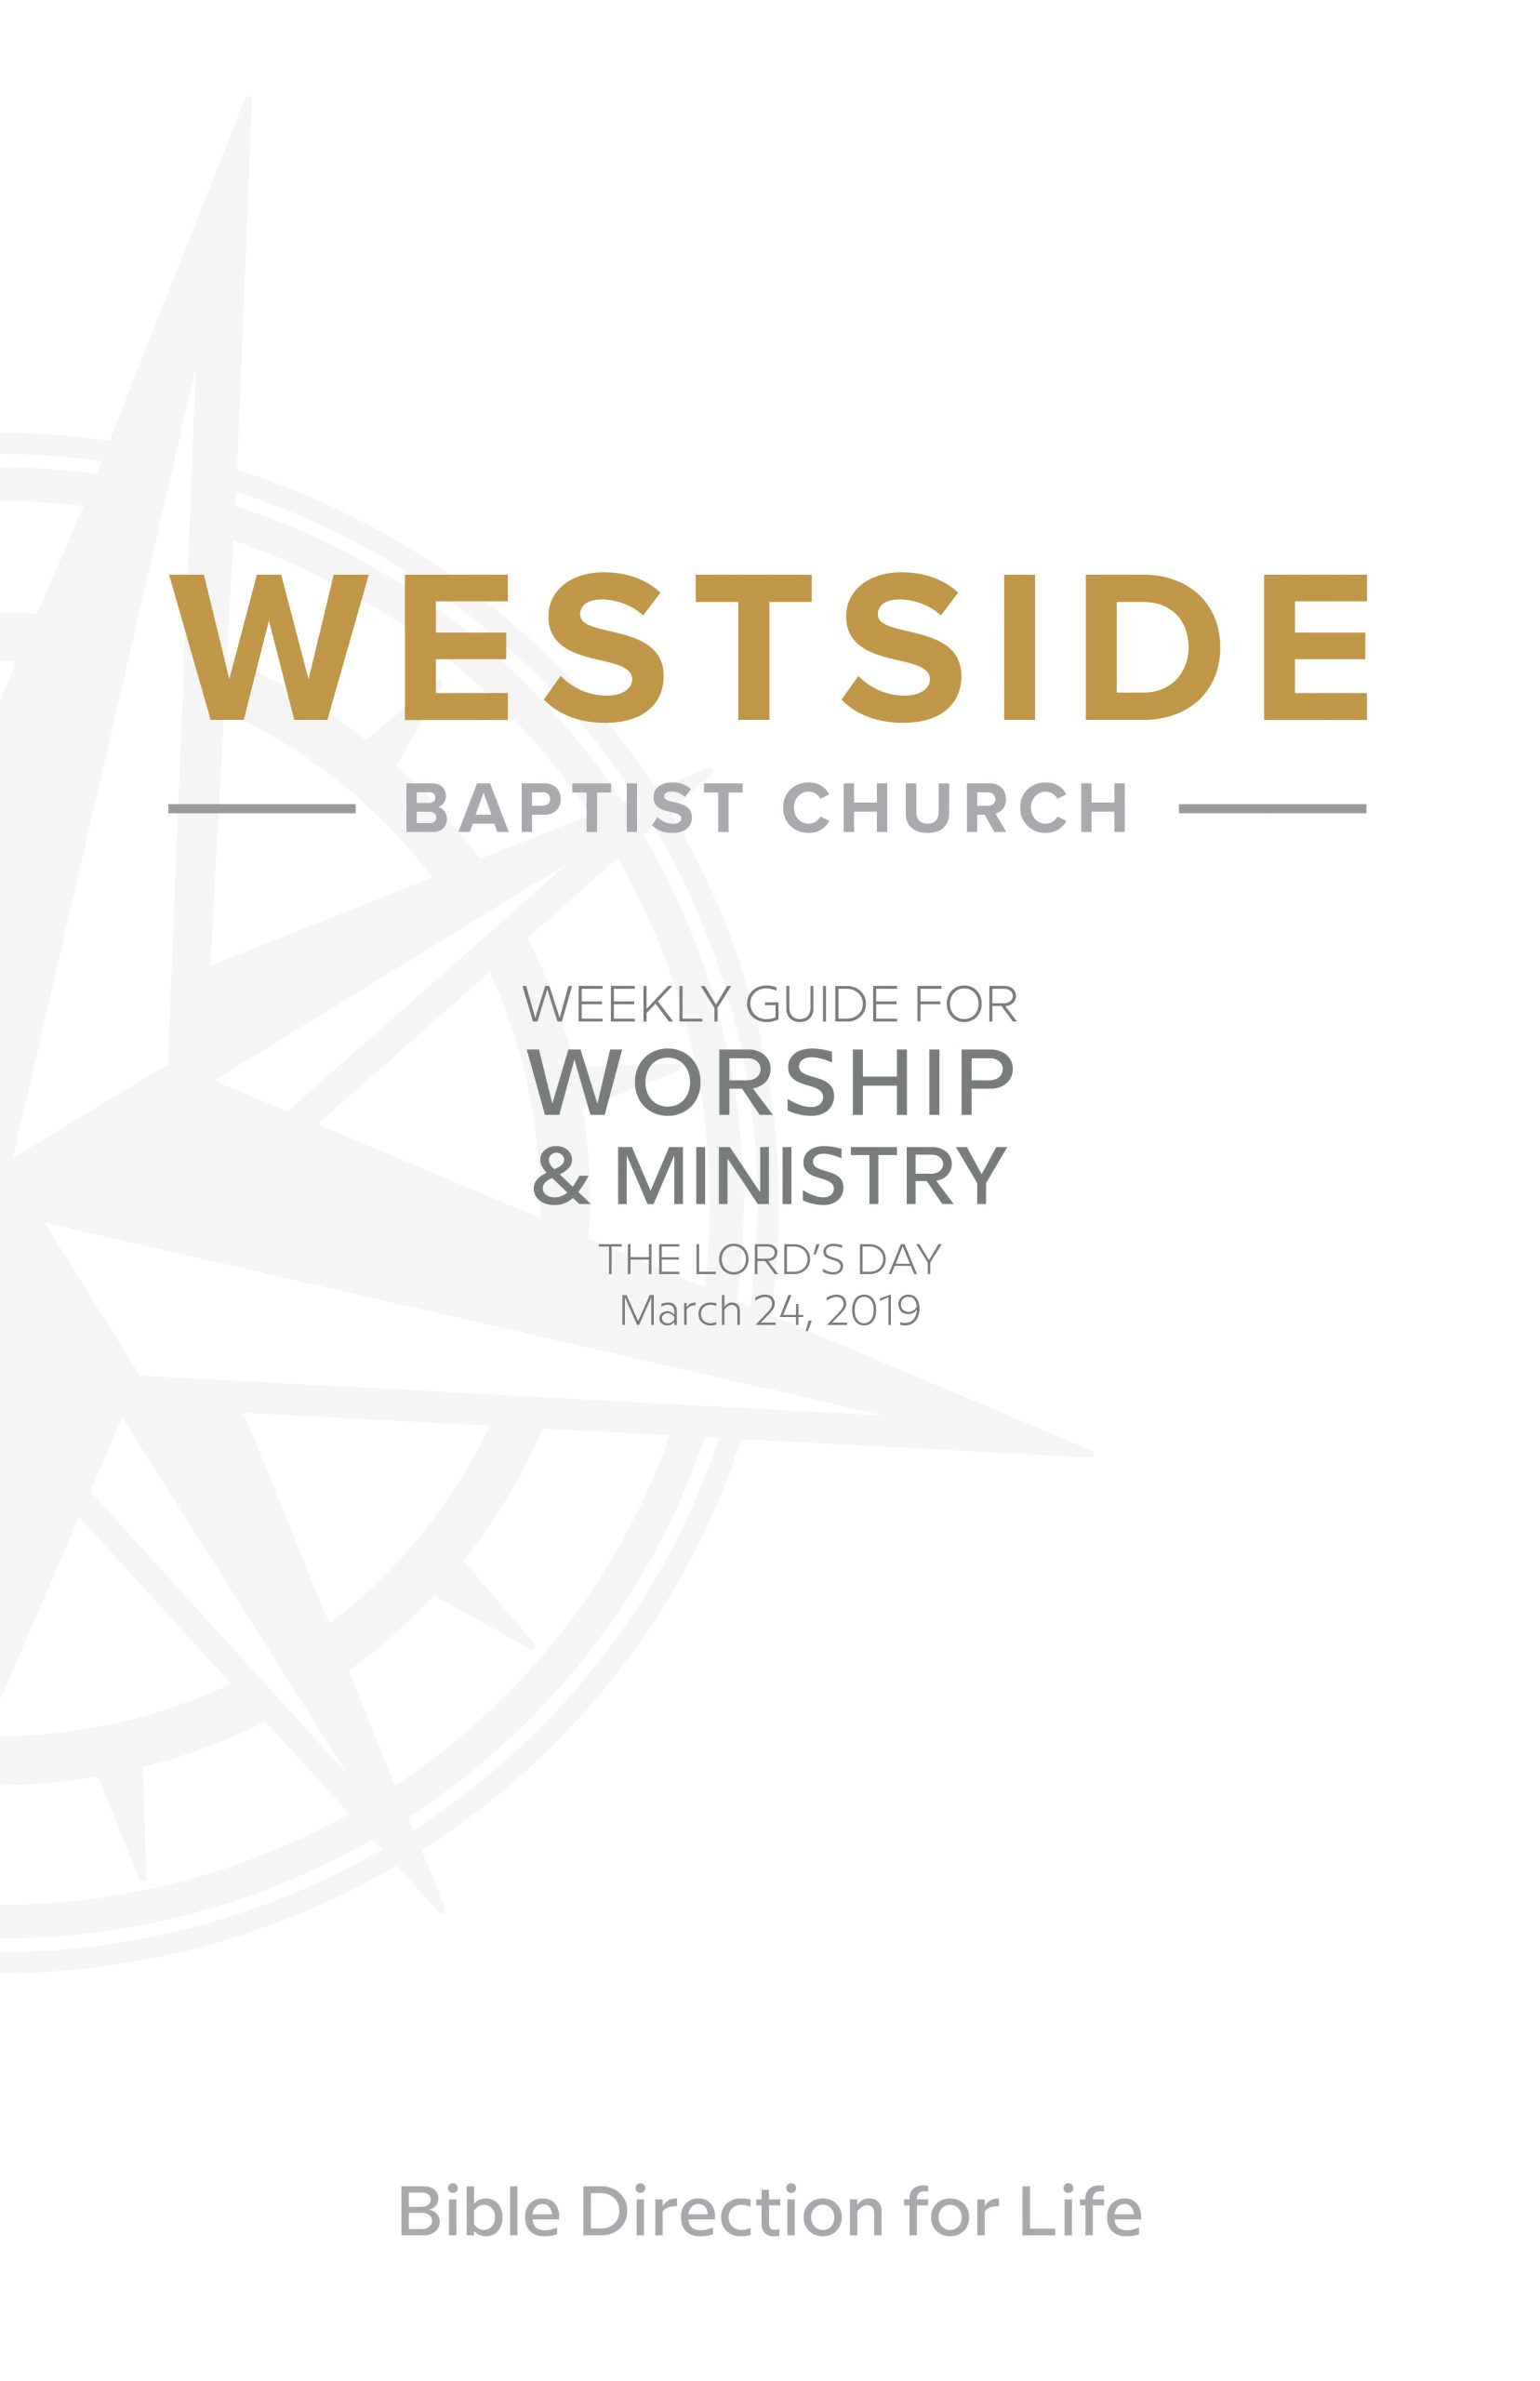 Weekly Guide for Worship and Ministry—March 24